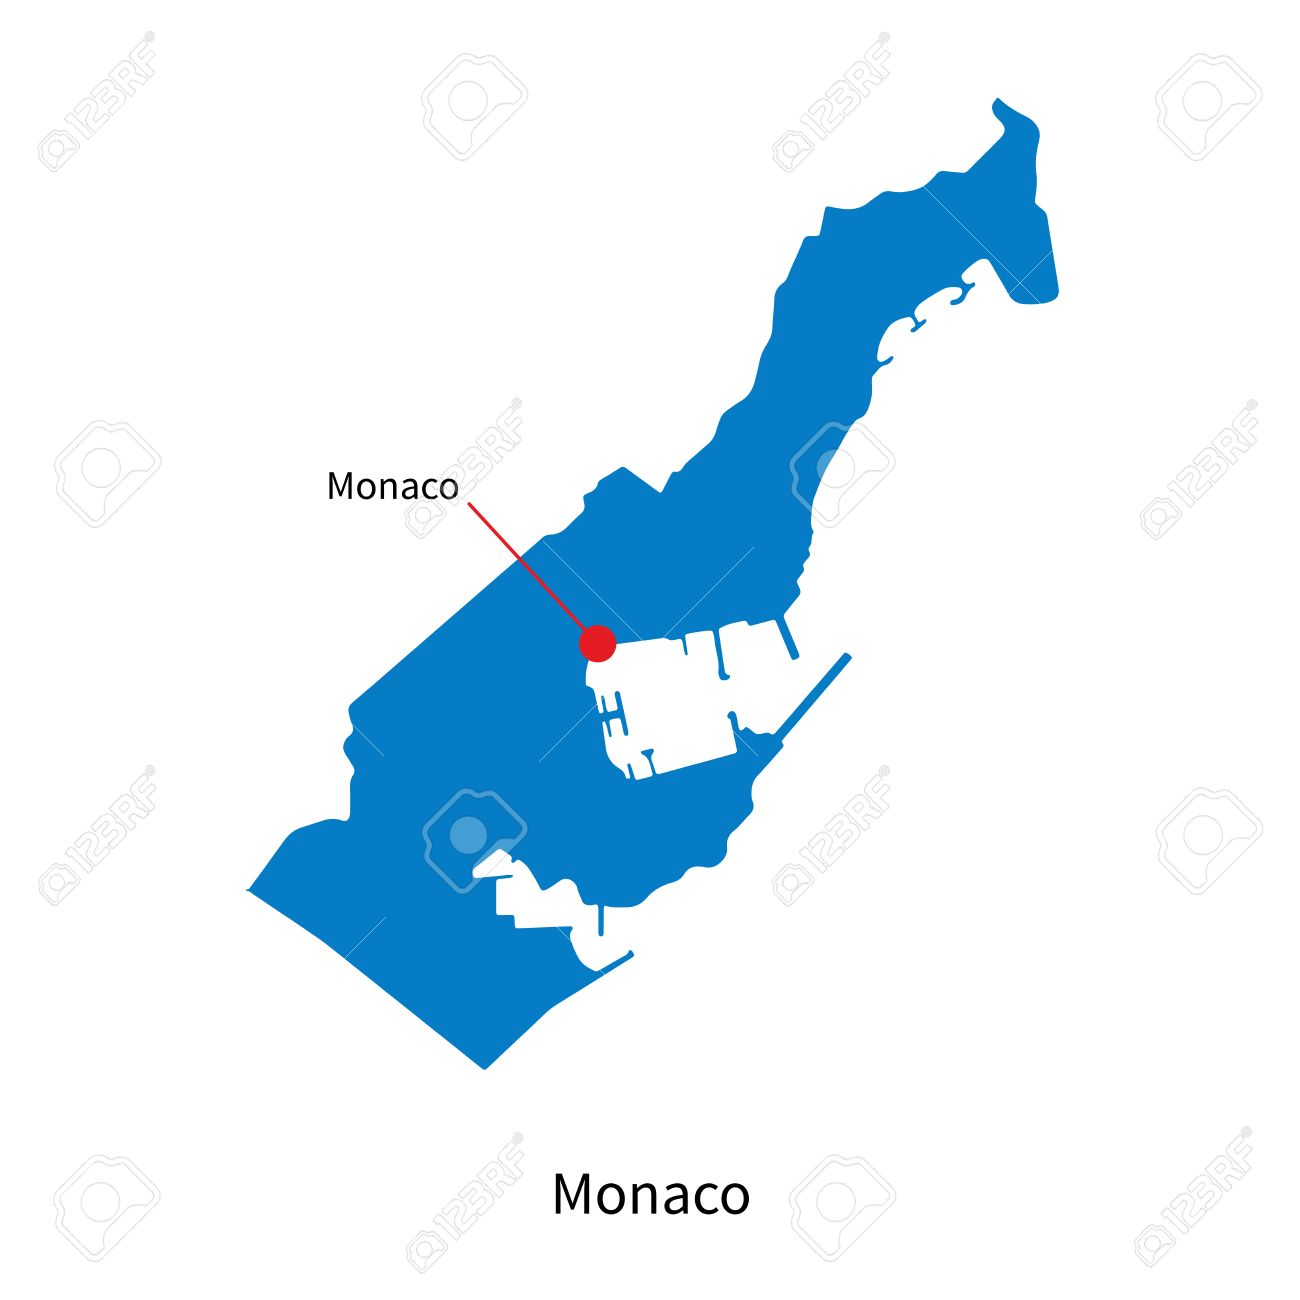 Detailed Map Of Monaco And Capital City Monaco Royalty Free Cliparts